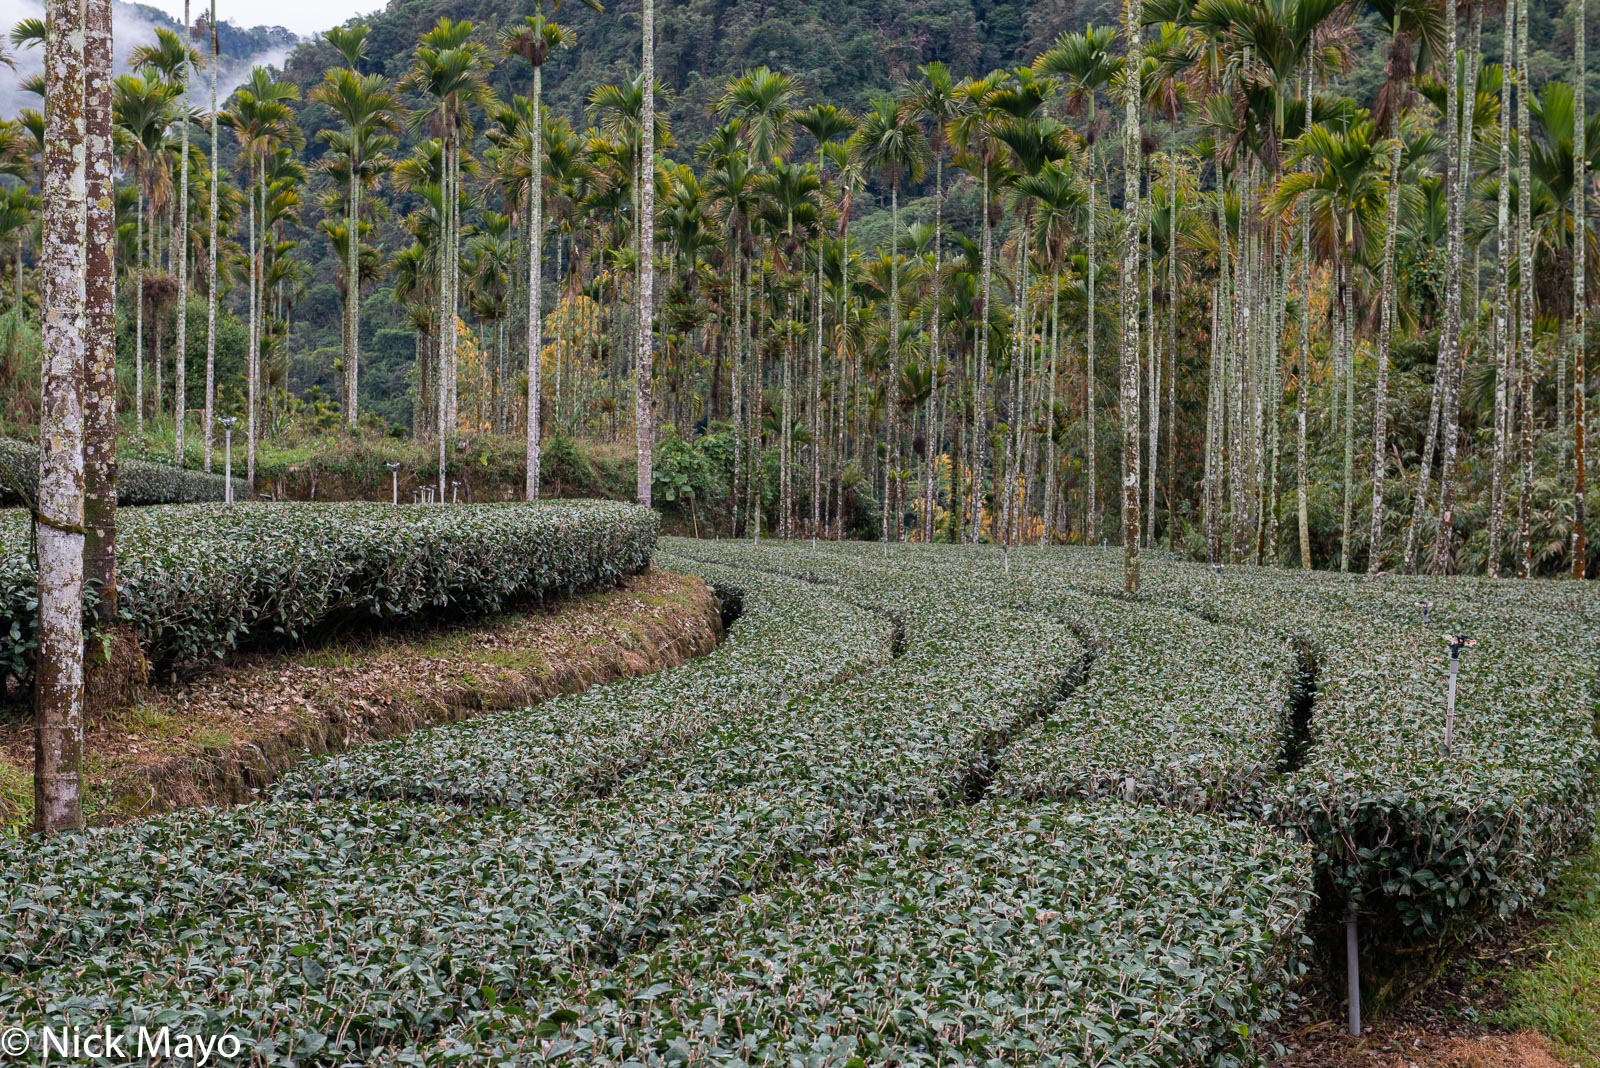 A tea field and betel trees at Zhukeng in Chiayi County.